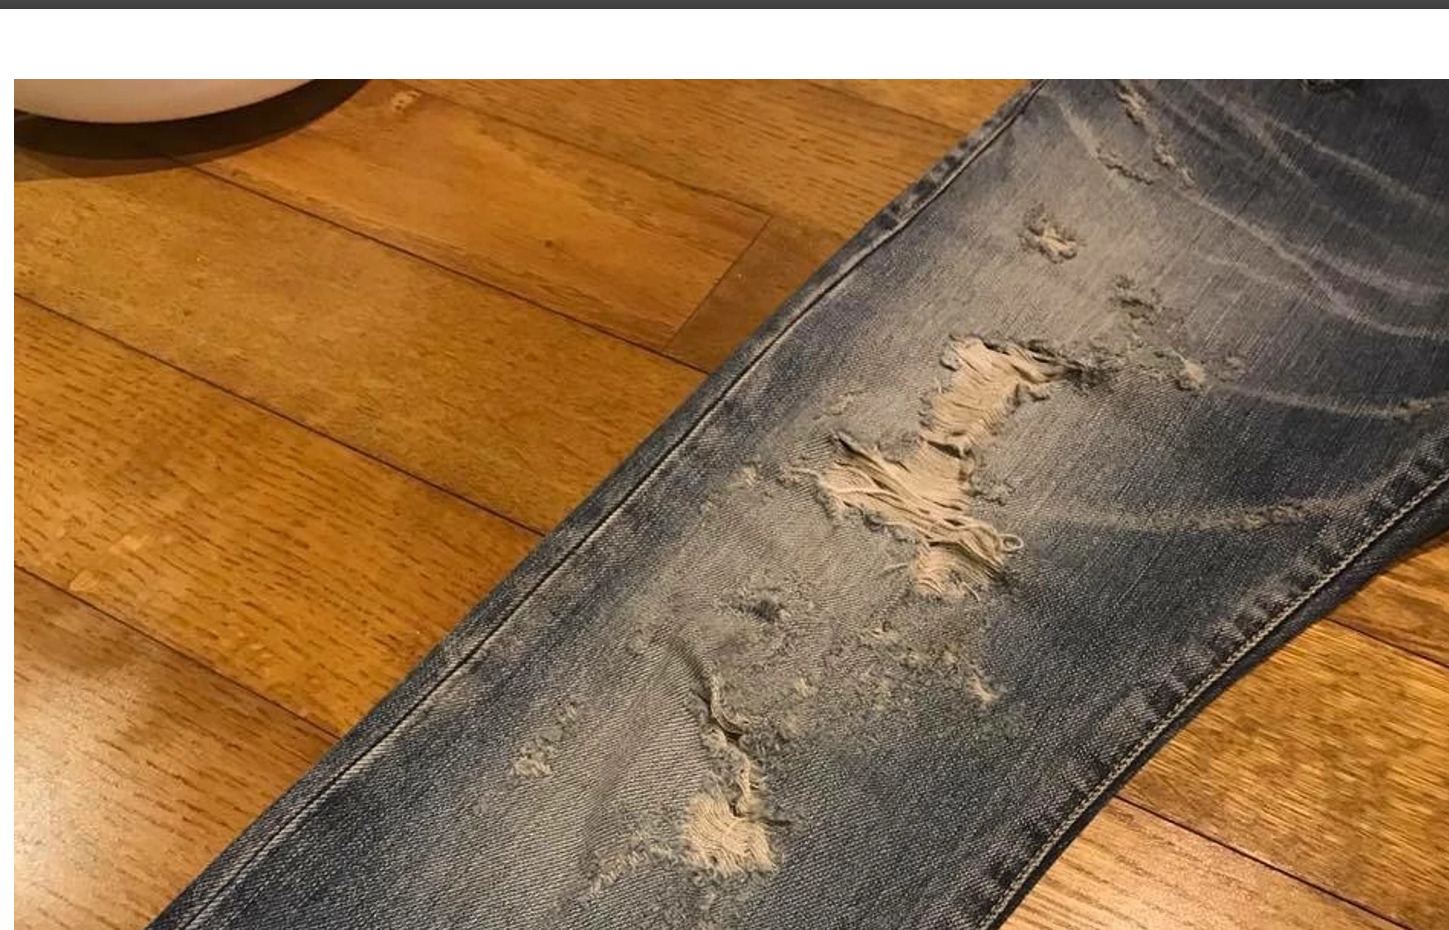 Screenshot_2019-06-17 Saint Laurent Paris Saint Laurent Fw13 Runway Crashed Destroyed Jeans Si...jpg